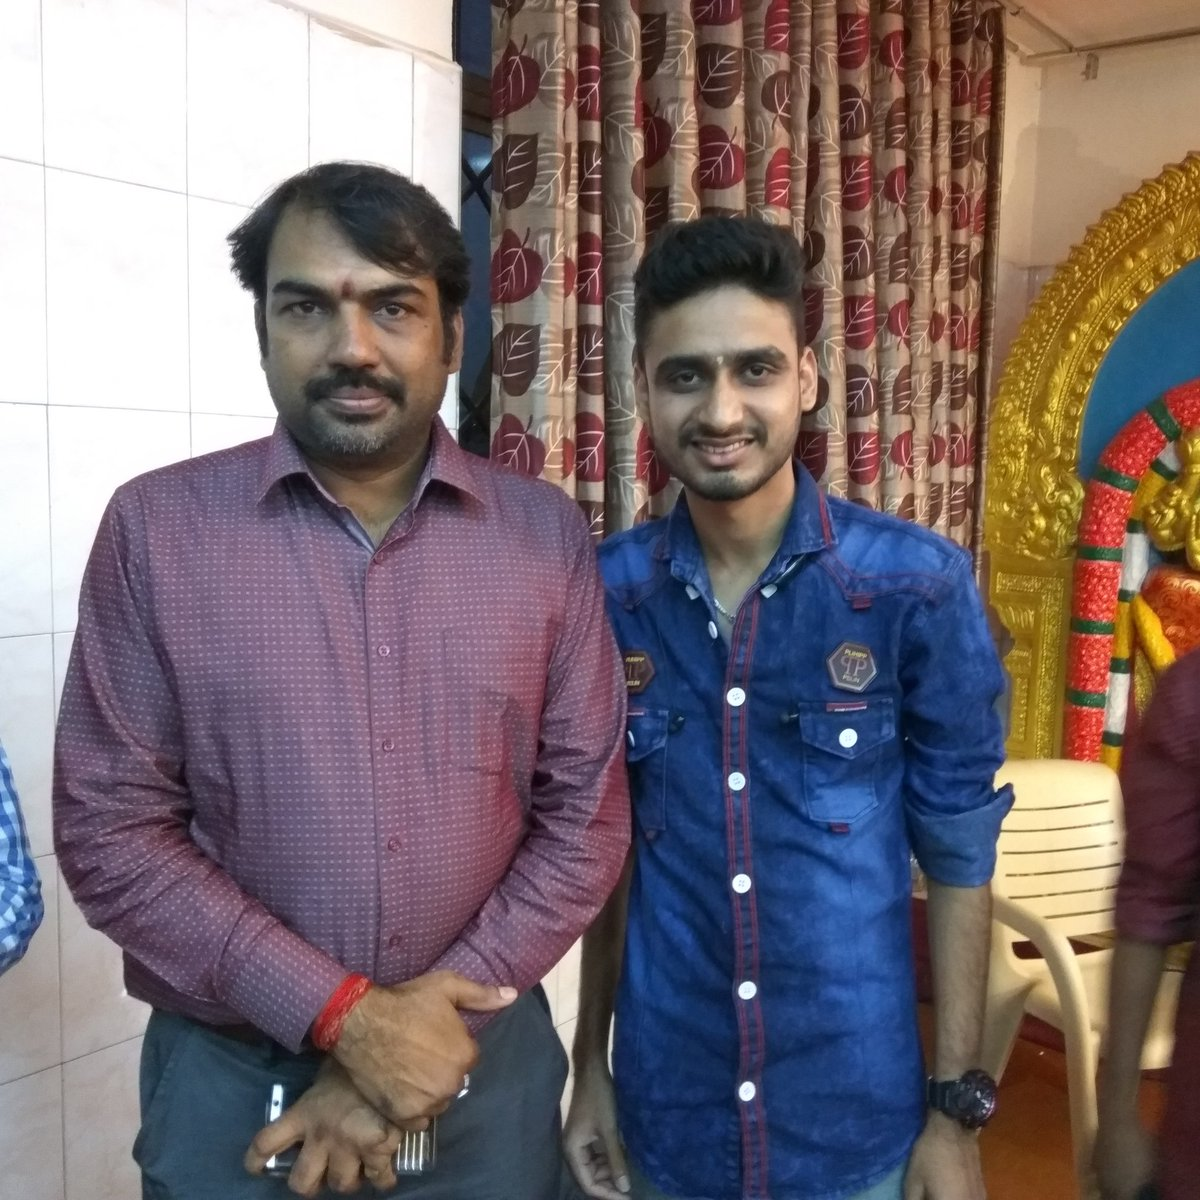 Actor Srinivas on Twitter: With Thanthi TV Rangaraj Pandey. Made my day.  #thanthi #thanthitv #news #newsreporter #tamilnews #tamilchannel #pandey #rangarajpandey #mademyday  #pic @ThanthiTV @RangarajPandeyR…